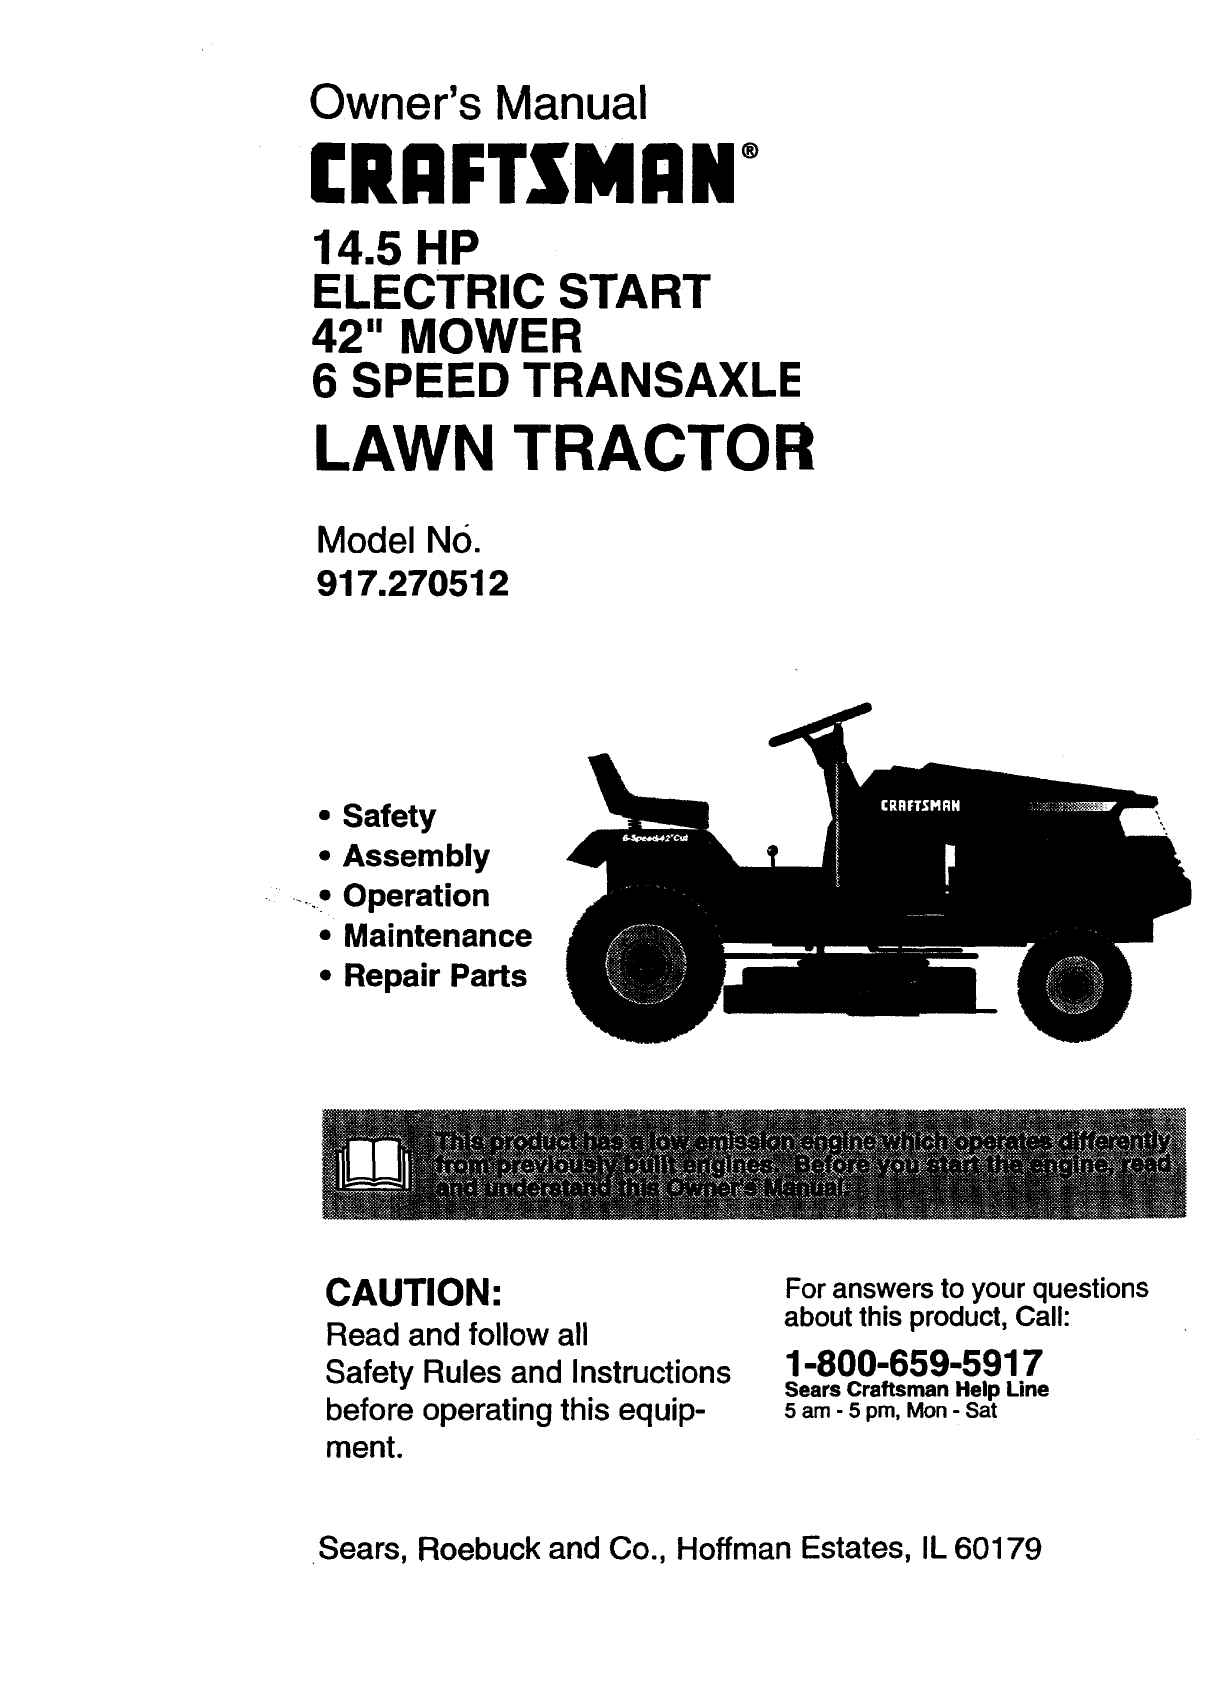 craftsman lawn mower 917 270512 user guide manualsonline com rh office manualsonline com sears craftsman riding mower parts canada sears craftsman riding mower parts canada